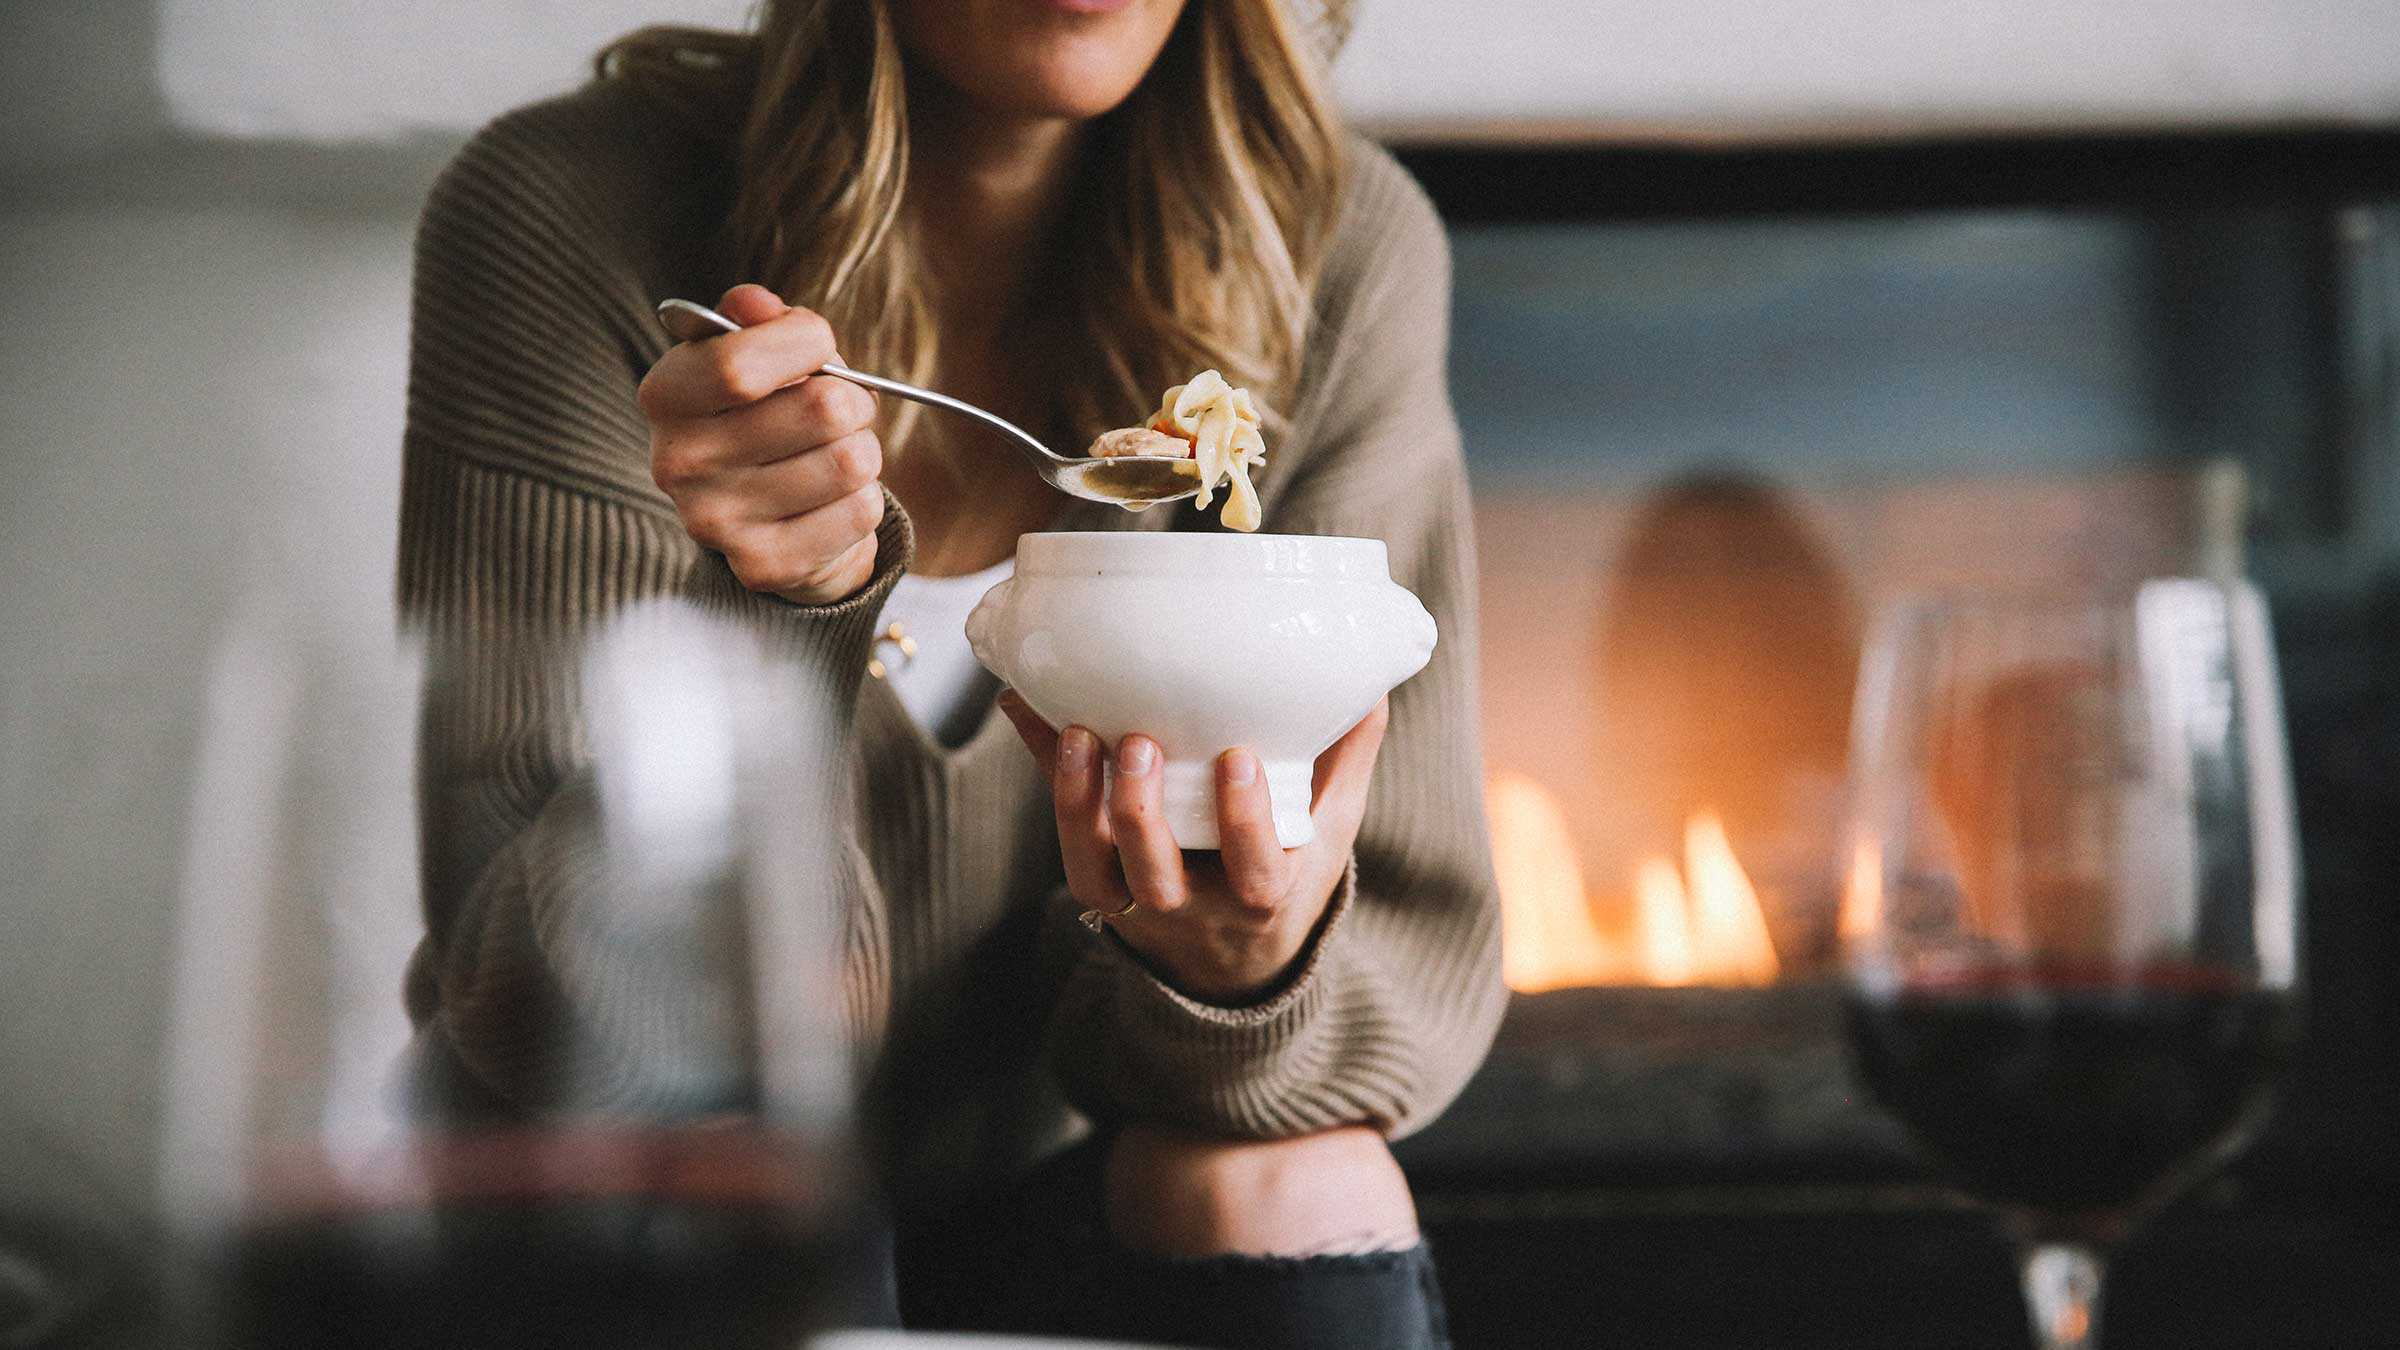 Woman eating noodle soup from a bowl, fireplace in the background